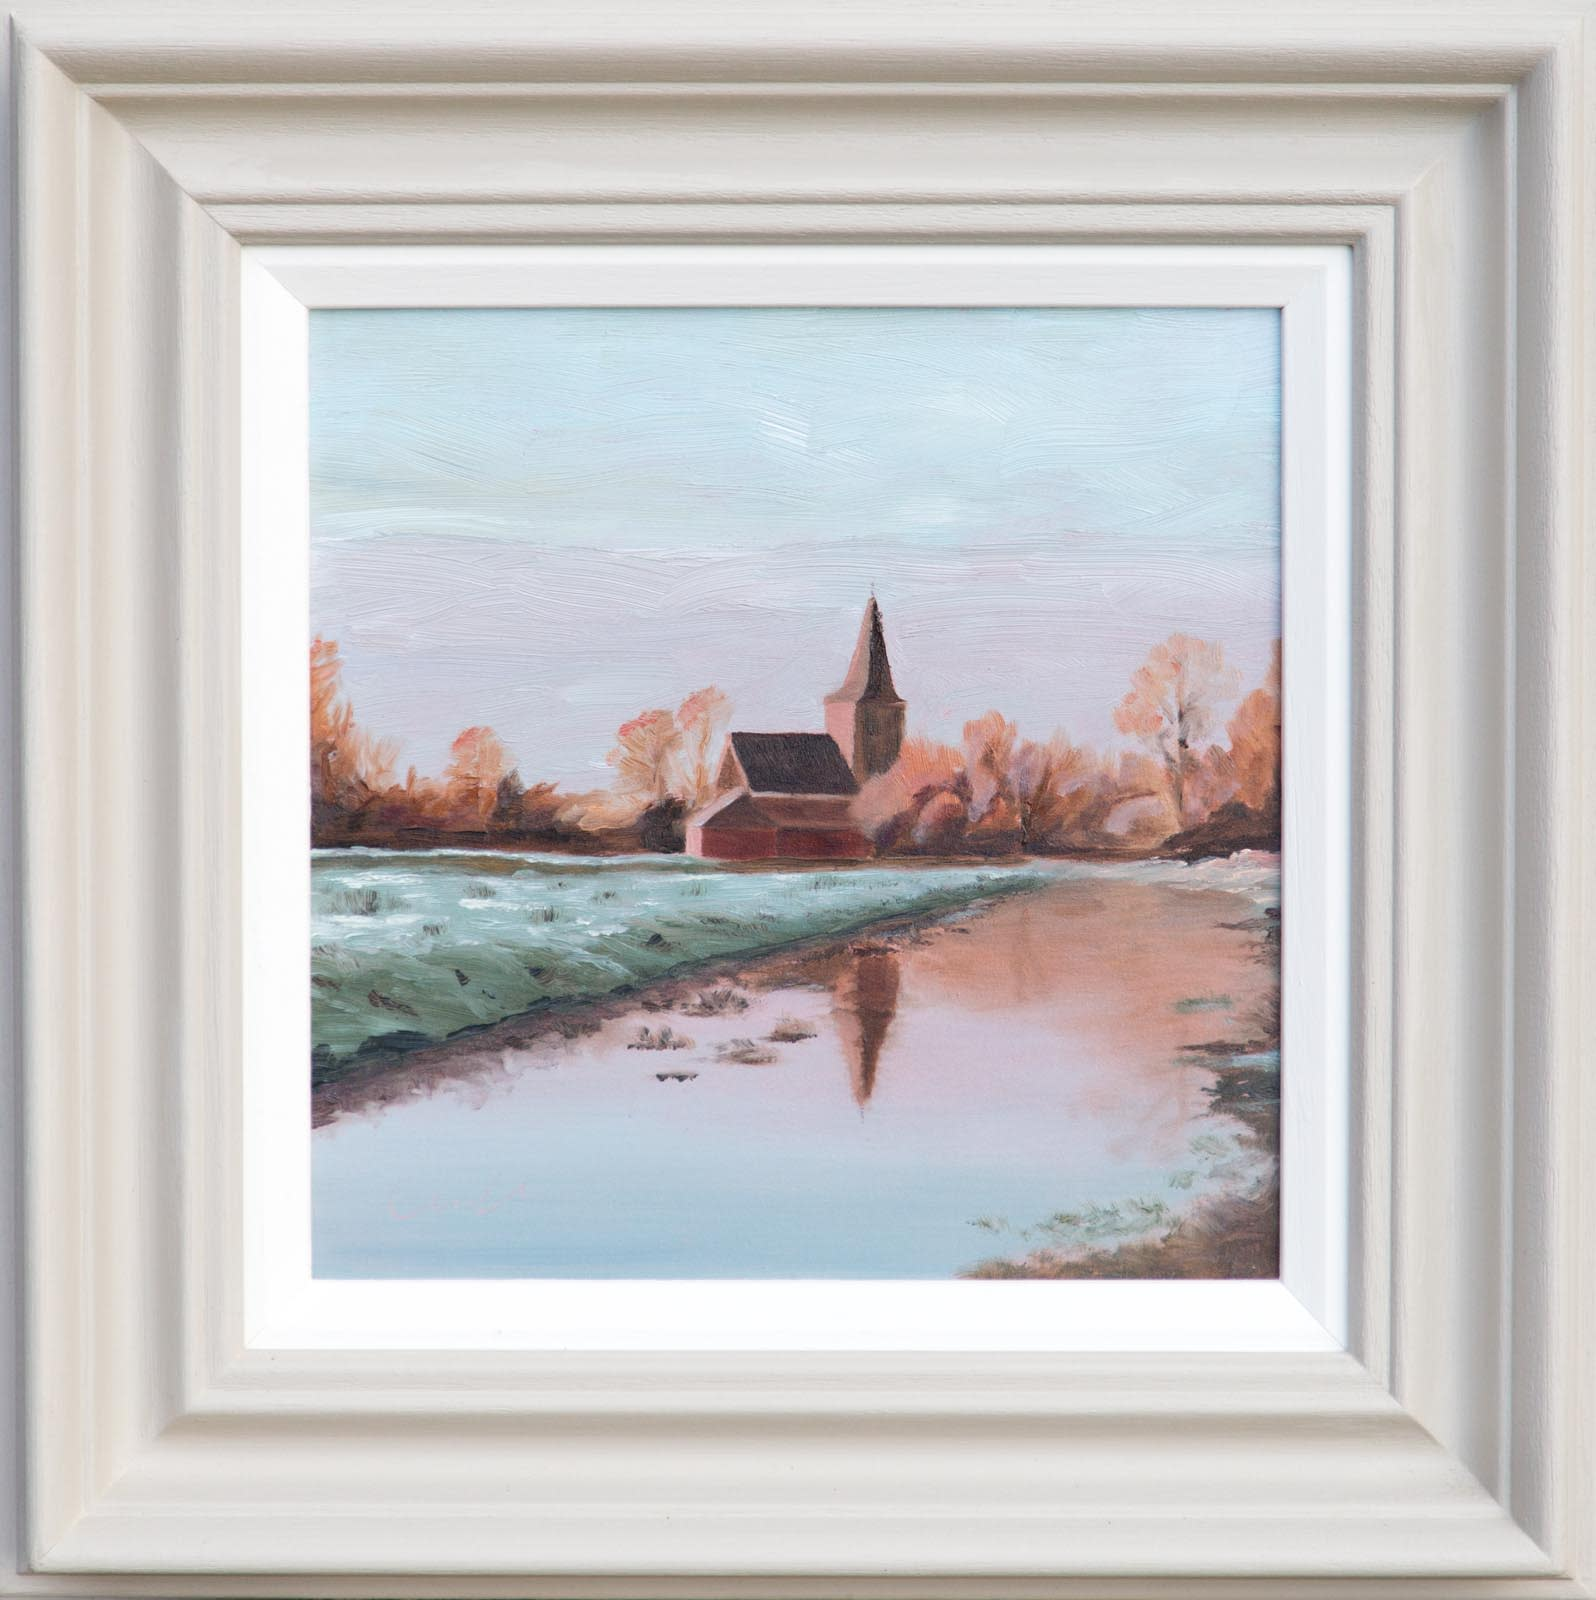 Bosham Church, Matthew Cordwell